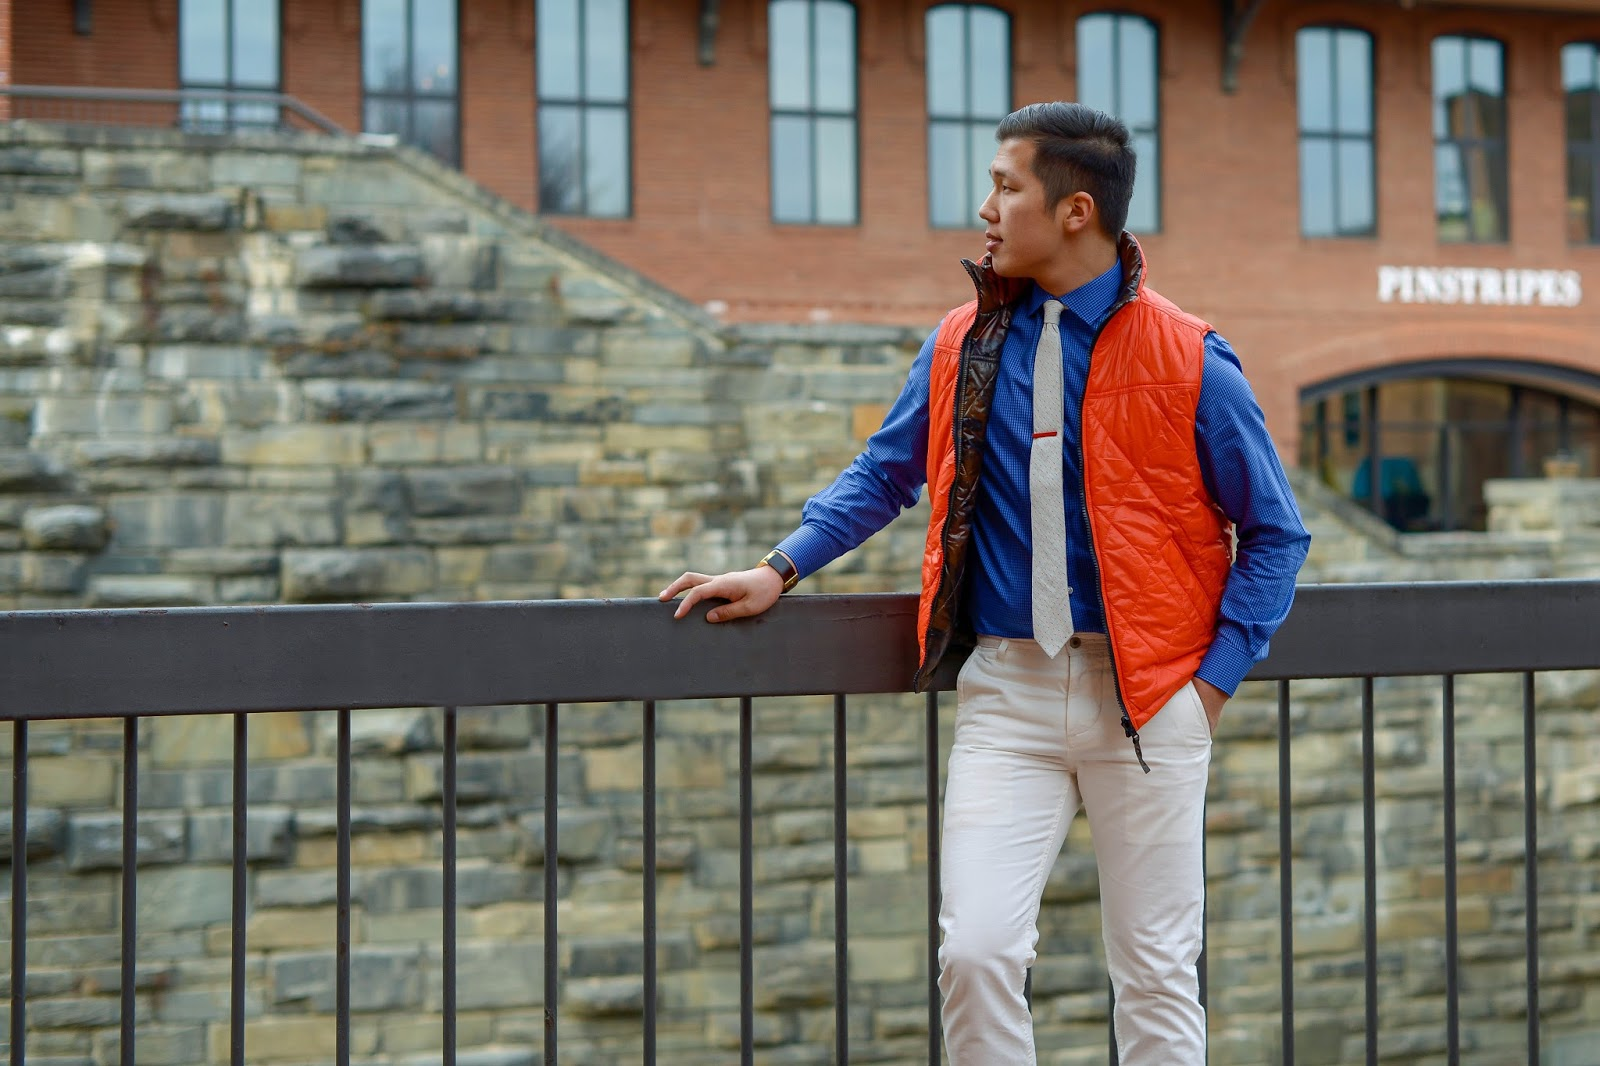 http://www.nxstyle.me/2015/05/georgetown-colors.html